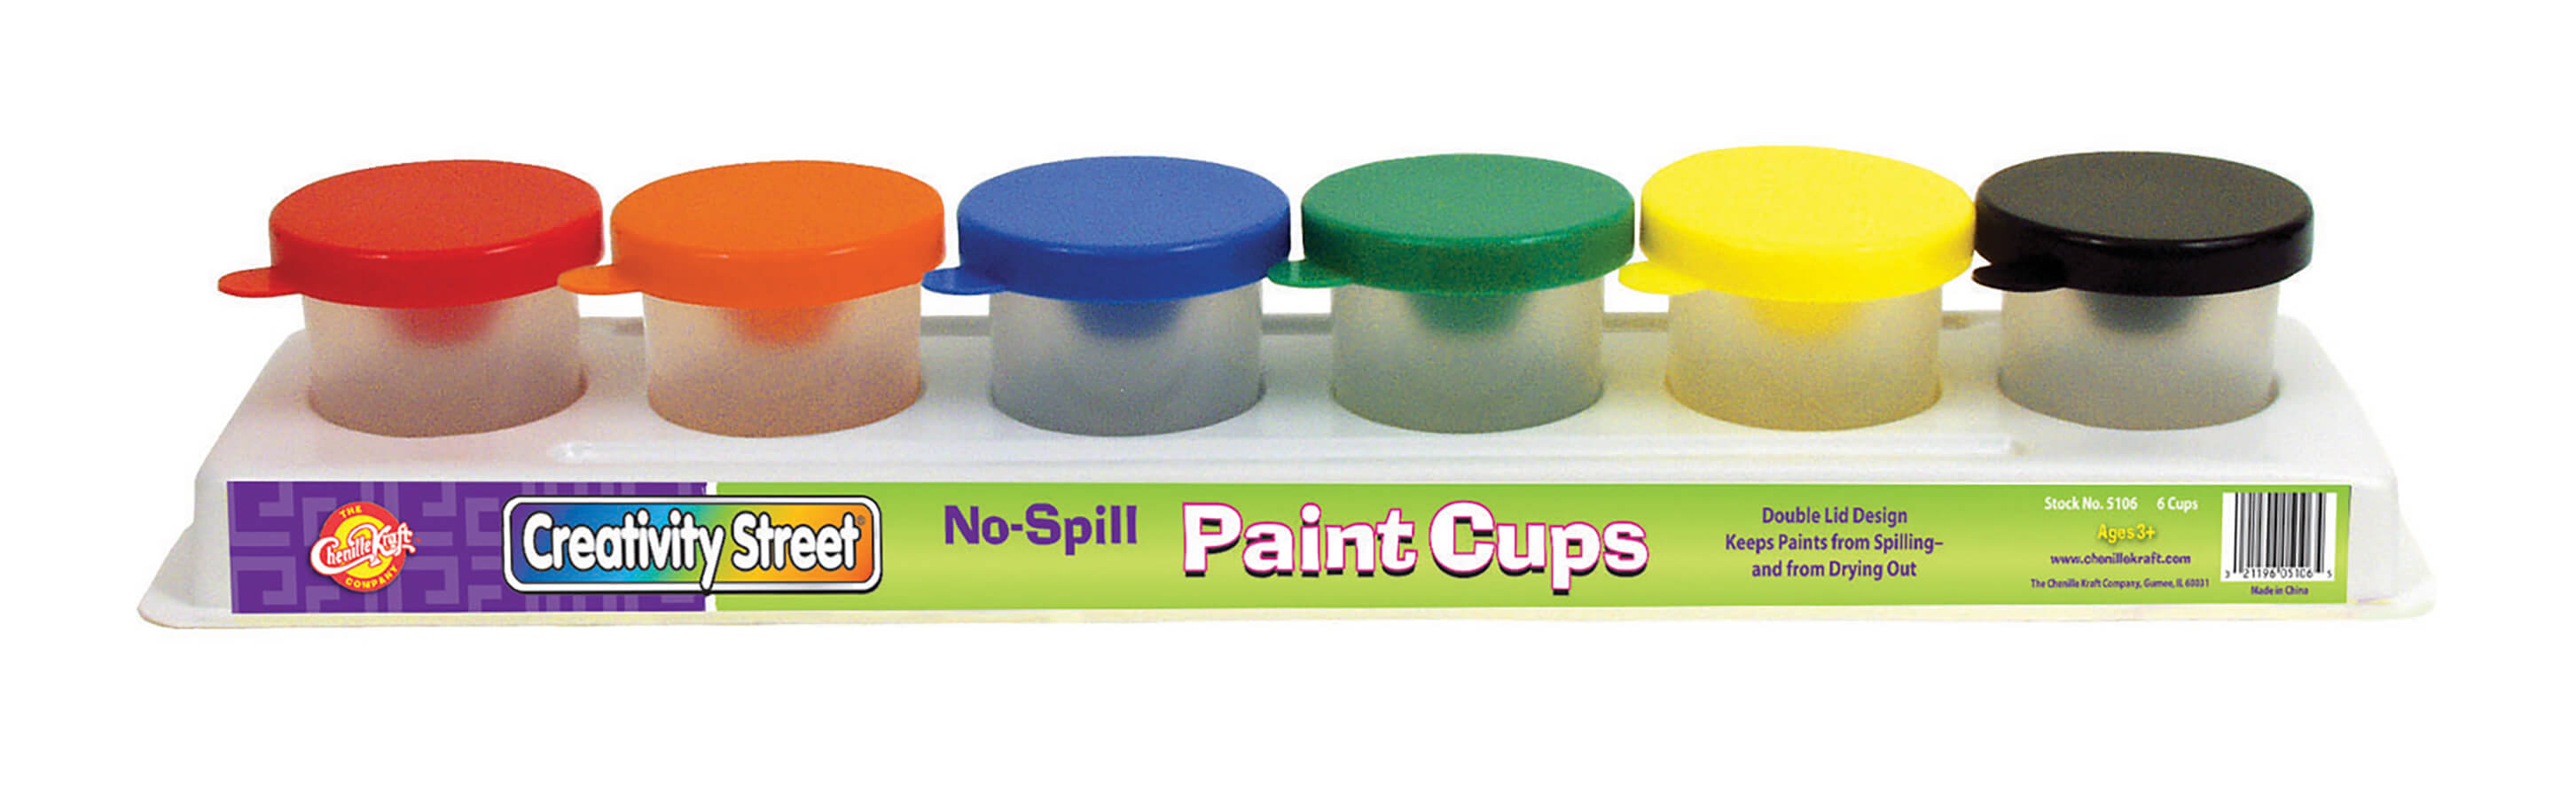 Creativity Street® No-Spill Paint Cups in Tray